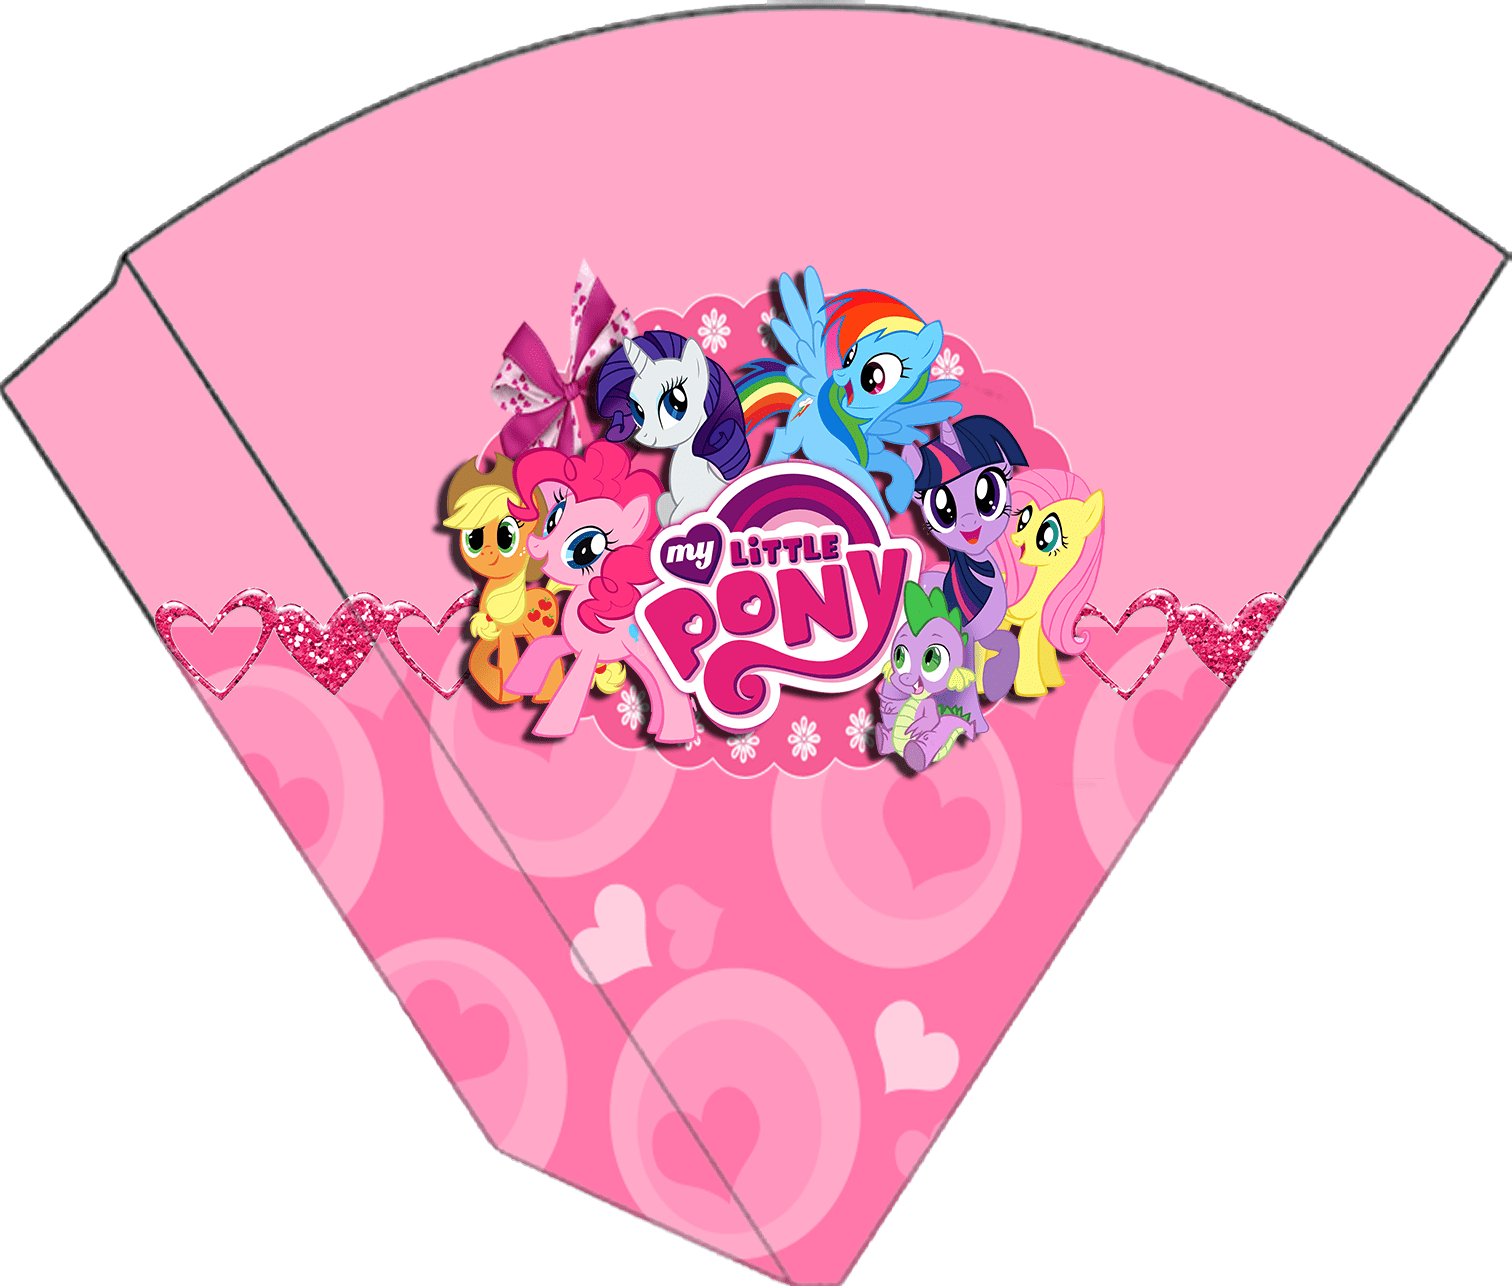 my-little-pony-imprimible1.png (1512×1286)